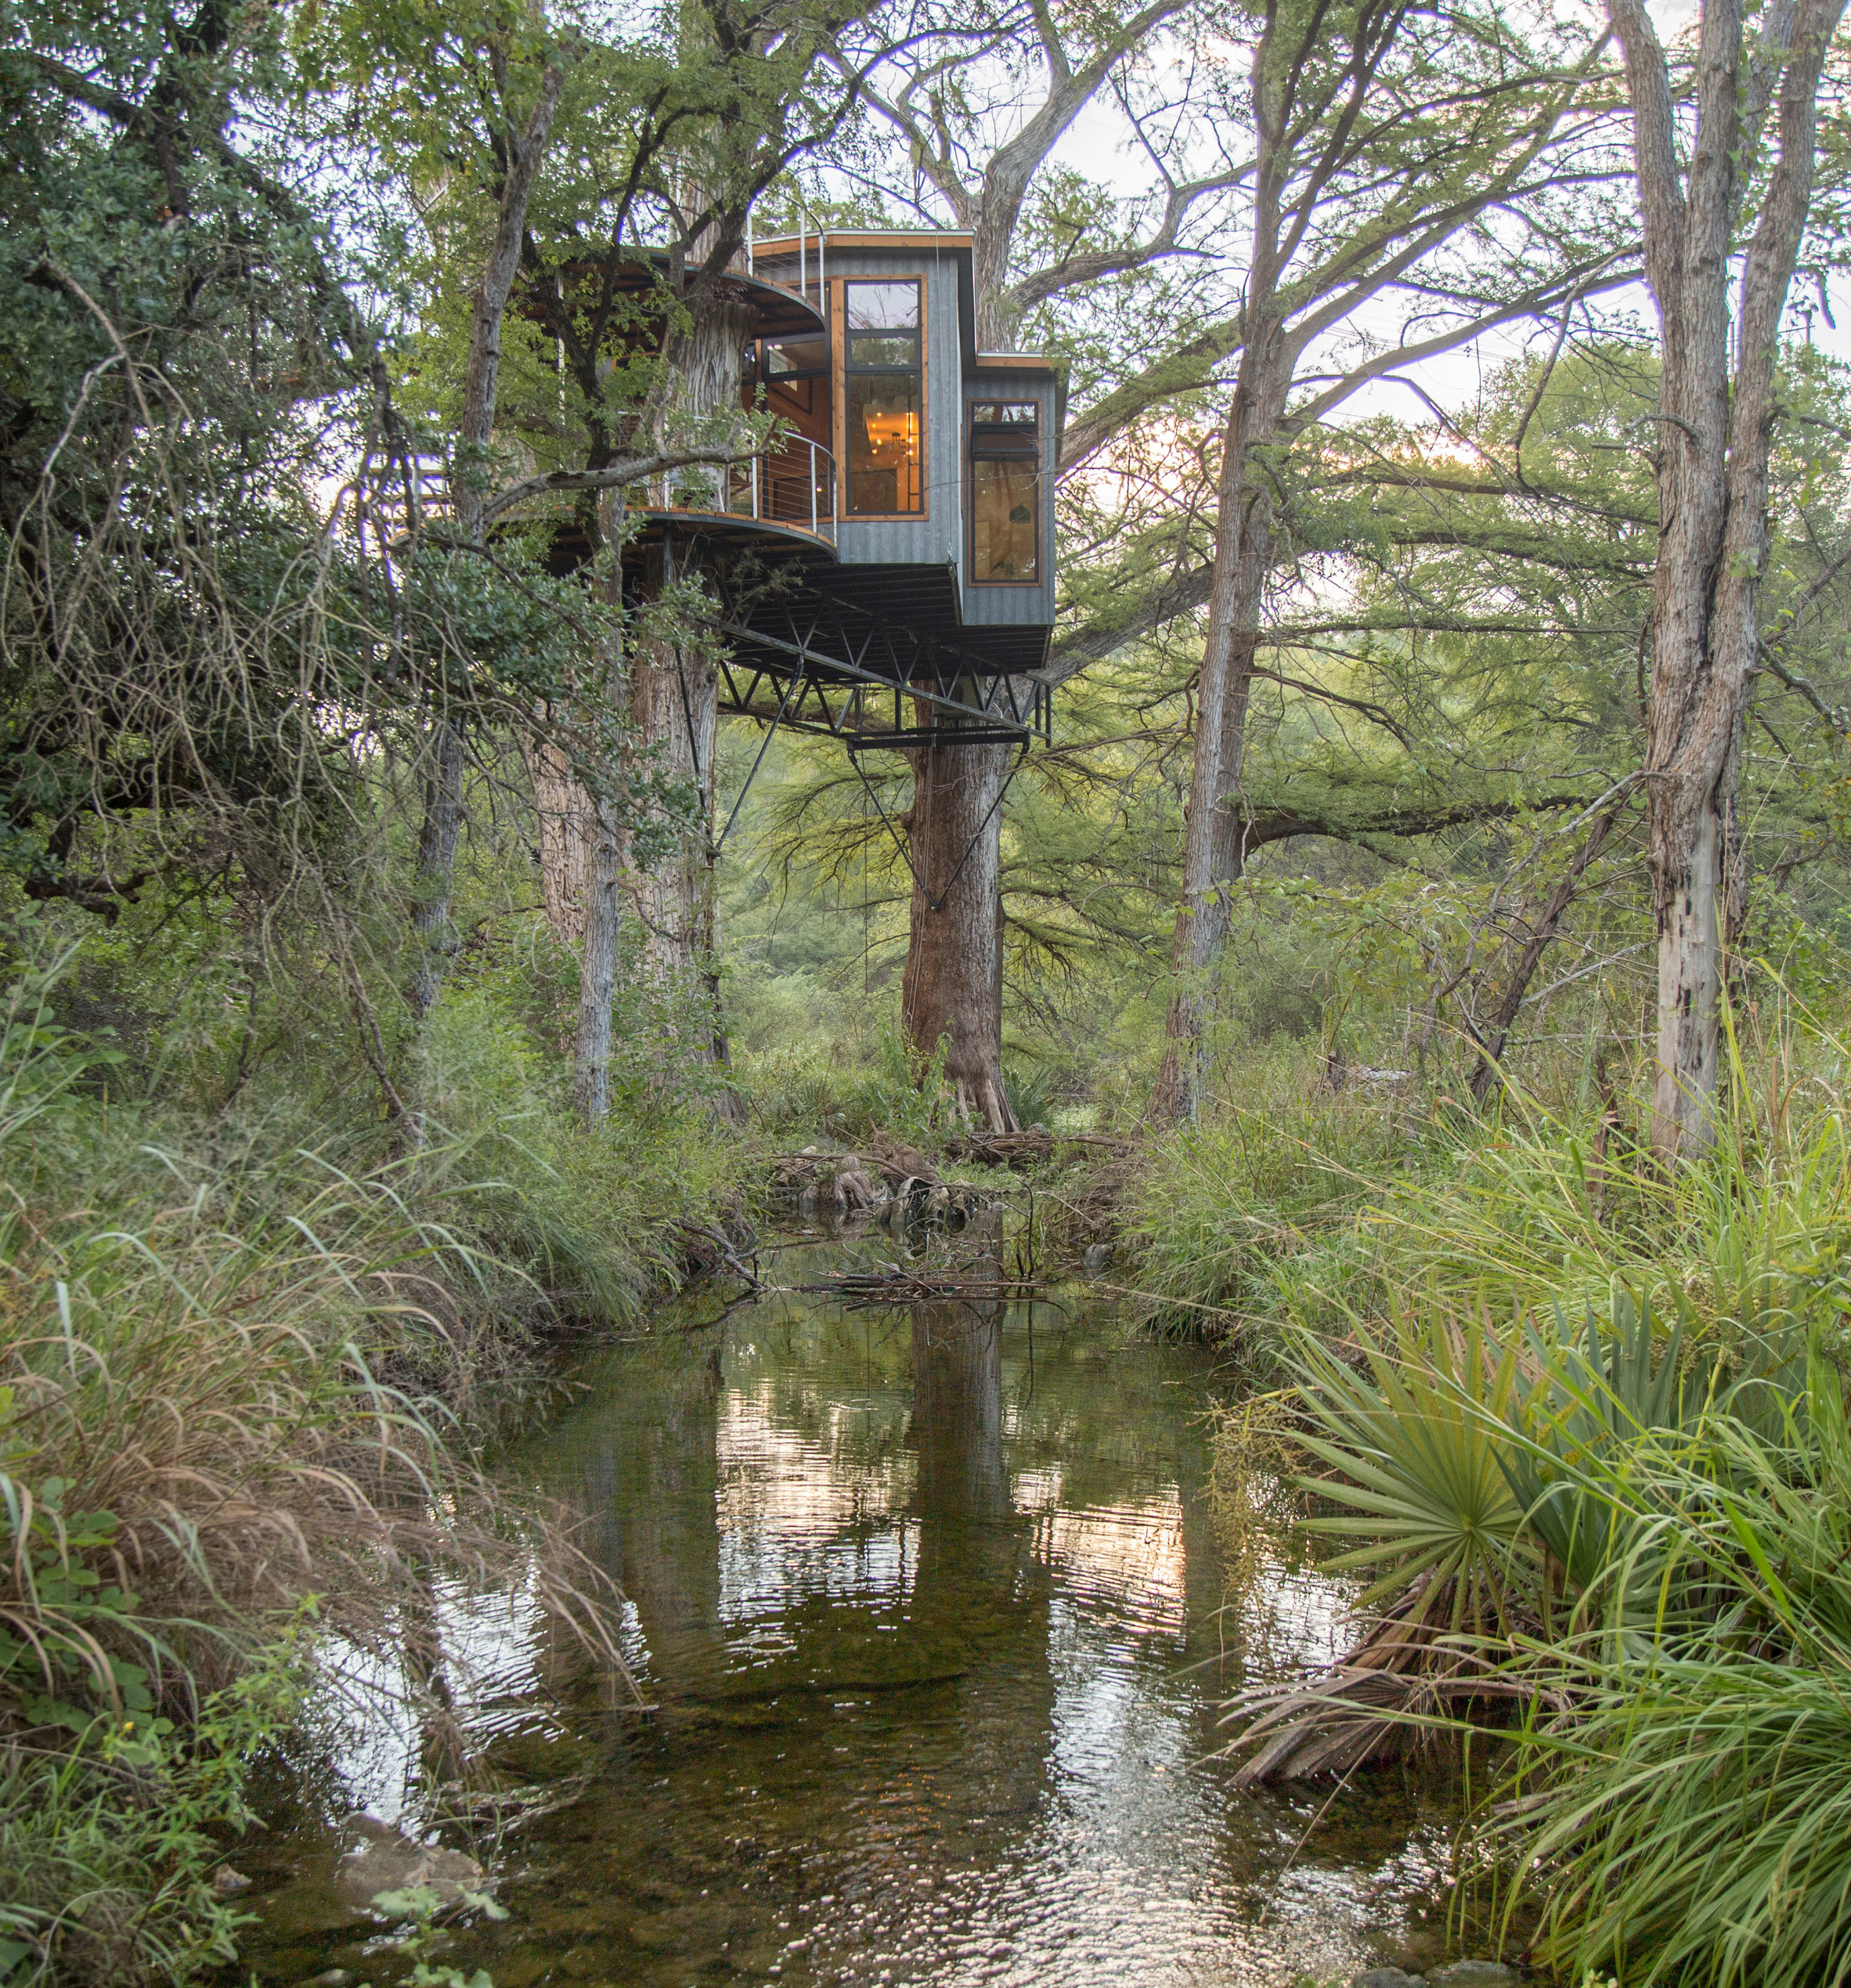 Yoki Treehouse by Will Beilharz spans cypress branches in central Texas